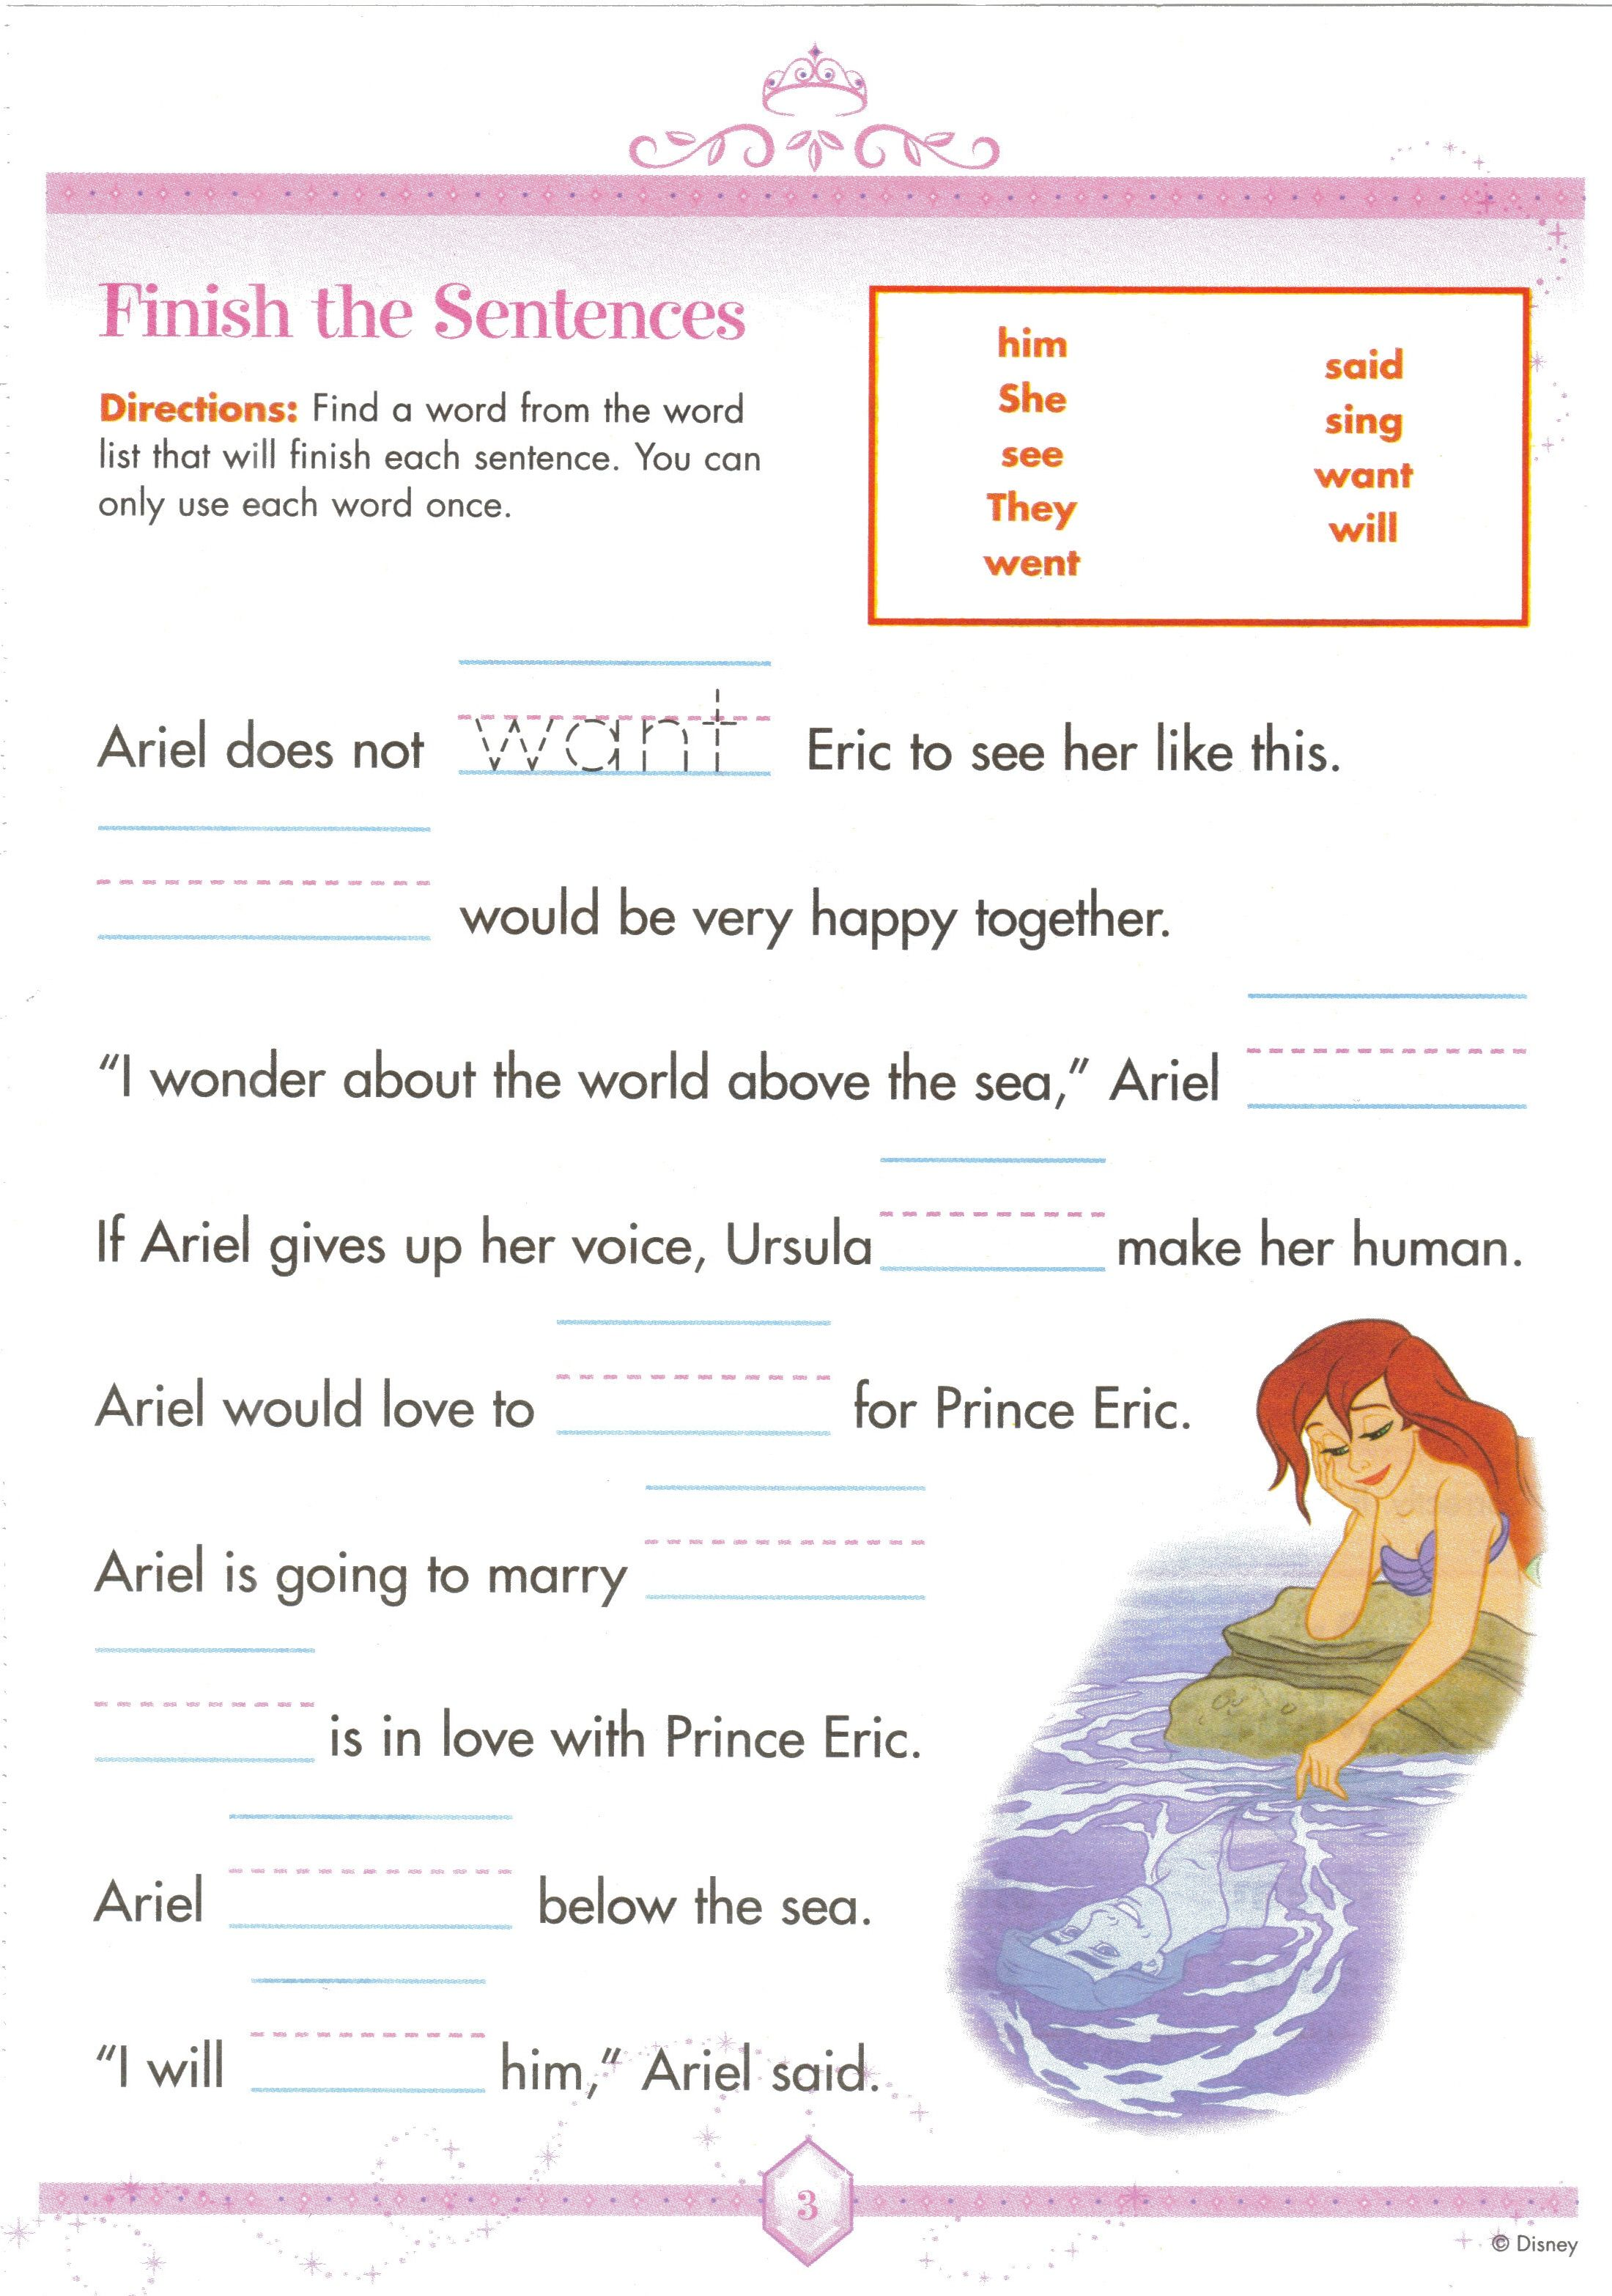 Weirdmailus  Splendid  Images About Worksheets On Pinterest  Fun Facts For Kids  With Lovely  Images About Worksheets On Pinterest  Fun Facts For Kids Earth Day Worksheets And Jungles With Appealing Currency Worksheet Also Super Sentences Worksheet In Addition Free Integer Worksheets Grade  And    Multiplication Worksheets As Well As The Little Red Hen Worksheet Additionally Land Forms Worksheet From Pinterestcom With Weirdmailus  Lovely  Images About Worksheets On Pinterest  Fun Facts For Kids  With Appealing  Images About Worksheets On Pinterest  Fun Facts For Kids Earth Day Worksheets And Jungles And Splendid Currency Worksheet Also Super Sentences Worksheet In Addition Free Integer Worksheets Grade  From Pinterestcom